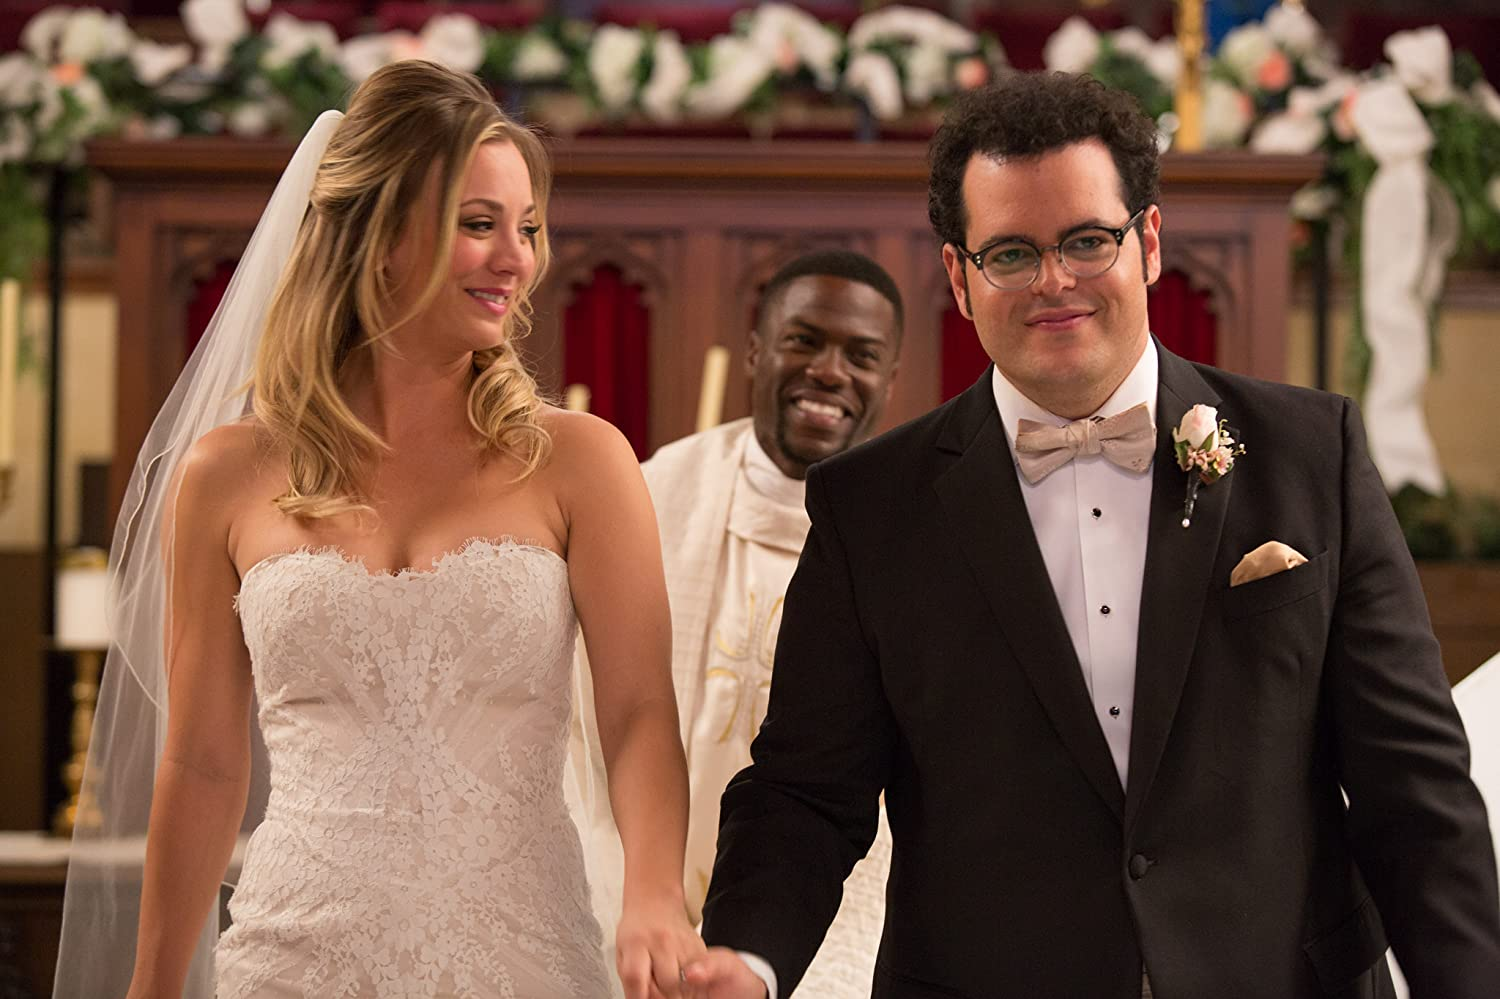 Kaley Cuoco, Kevin Hart, and Josh Gad in The Wedding Ringer (2015)